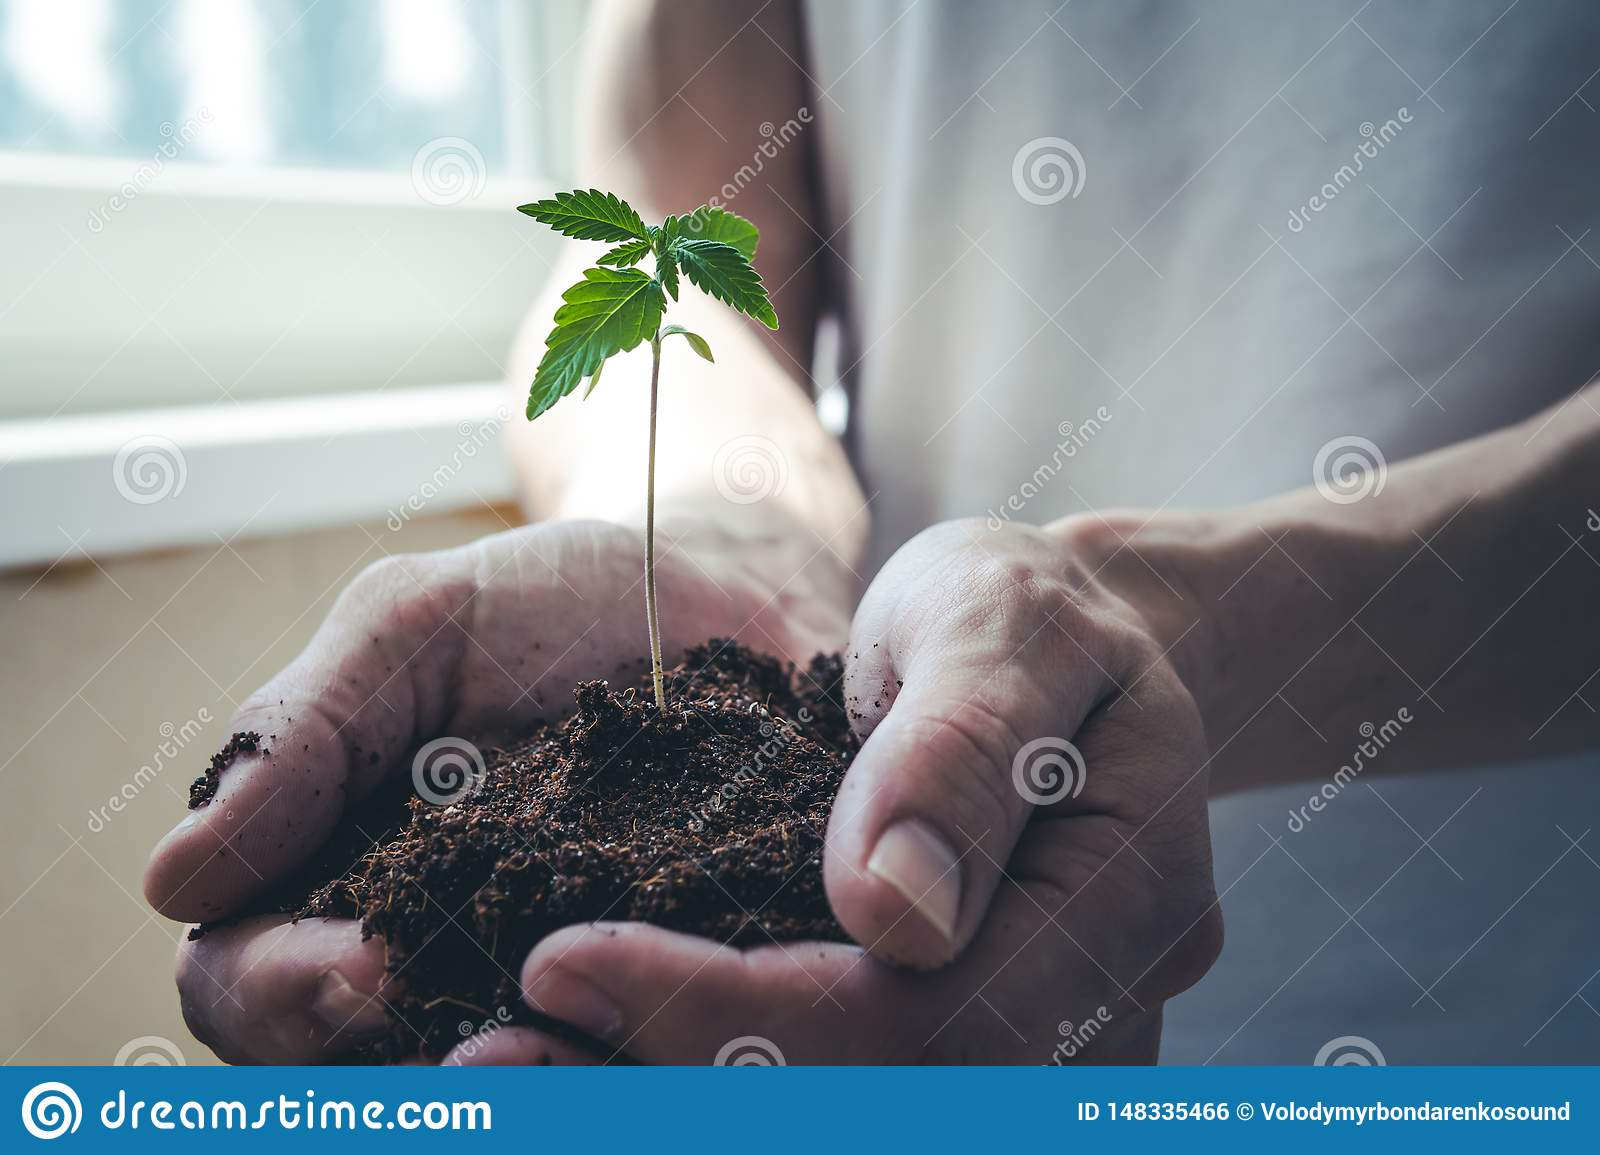 The young person hold in his hand sprout of medical marijuana